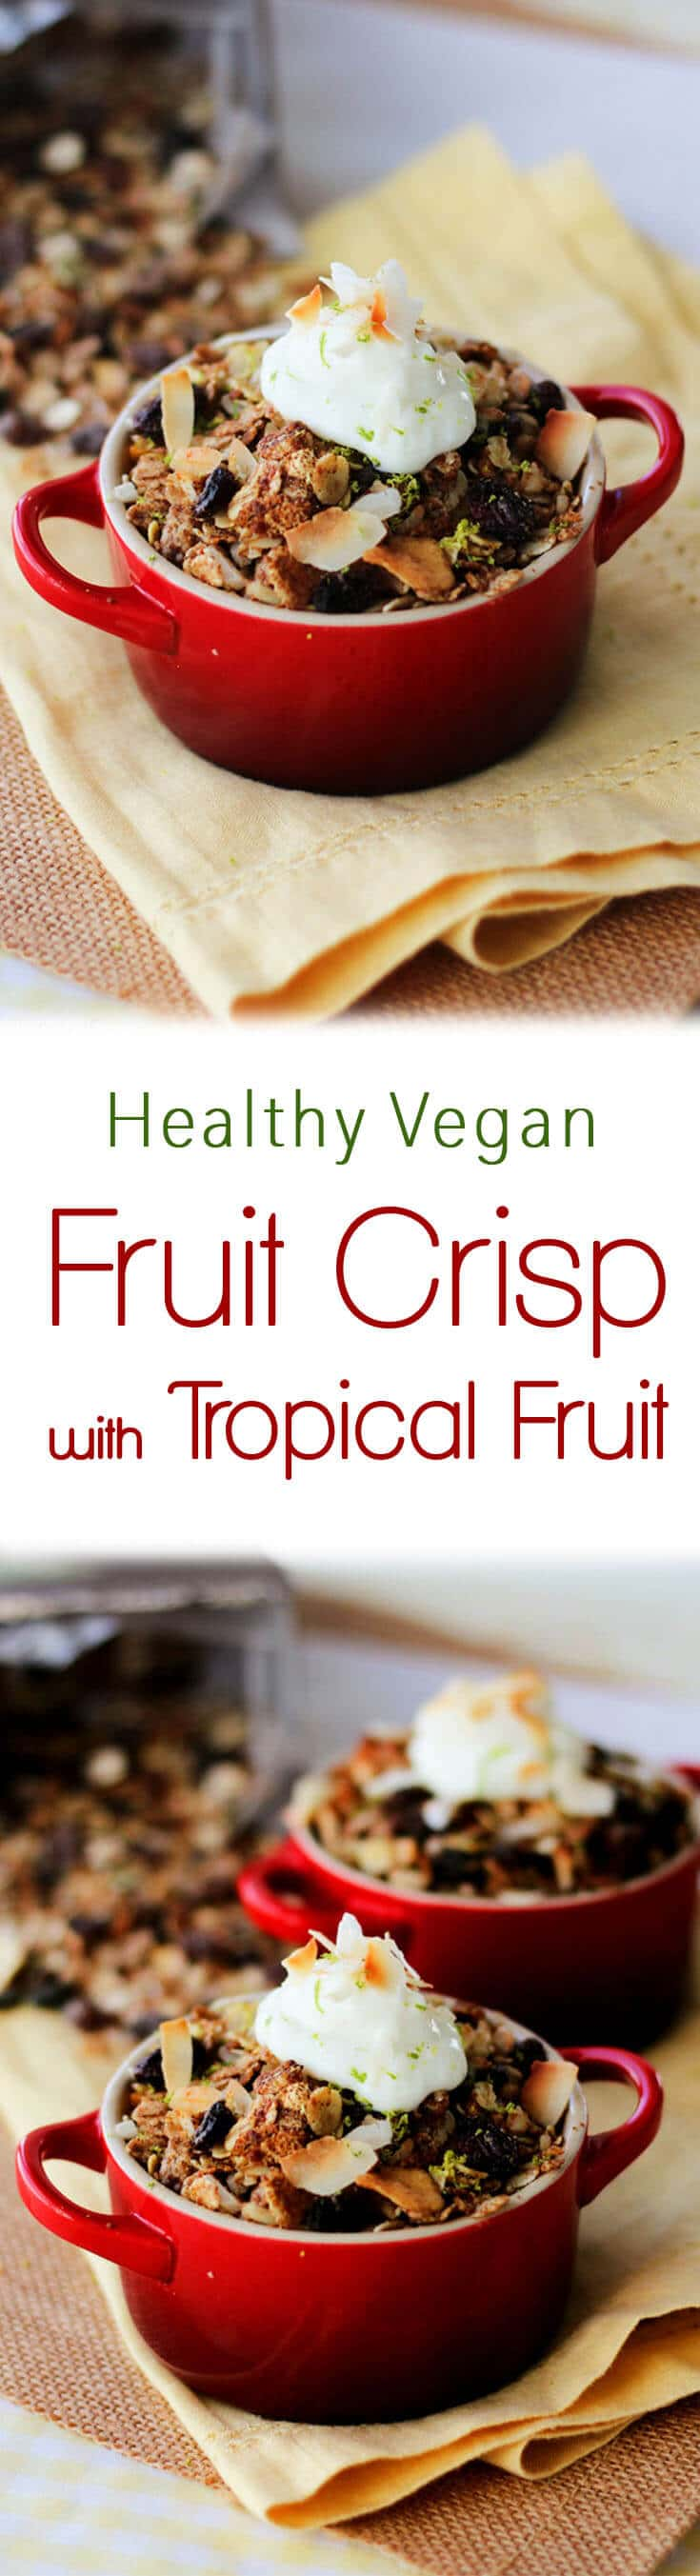 This Vegan Tropical Fruit Crisp is my healthy take on the classic Fall dessert!